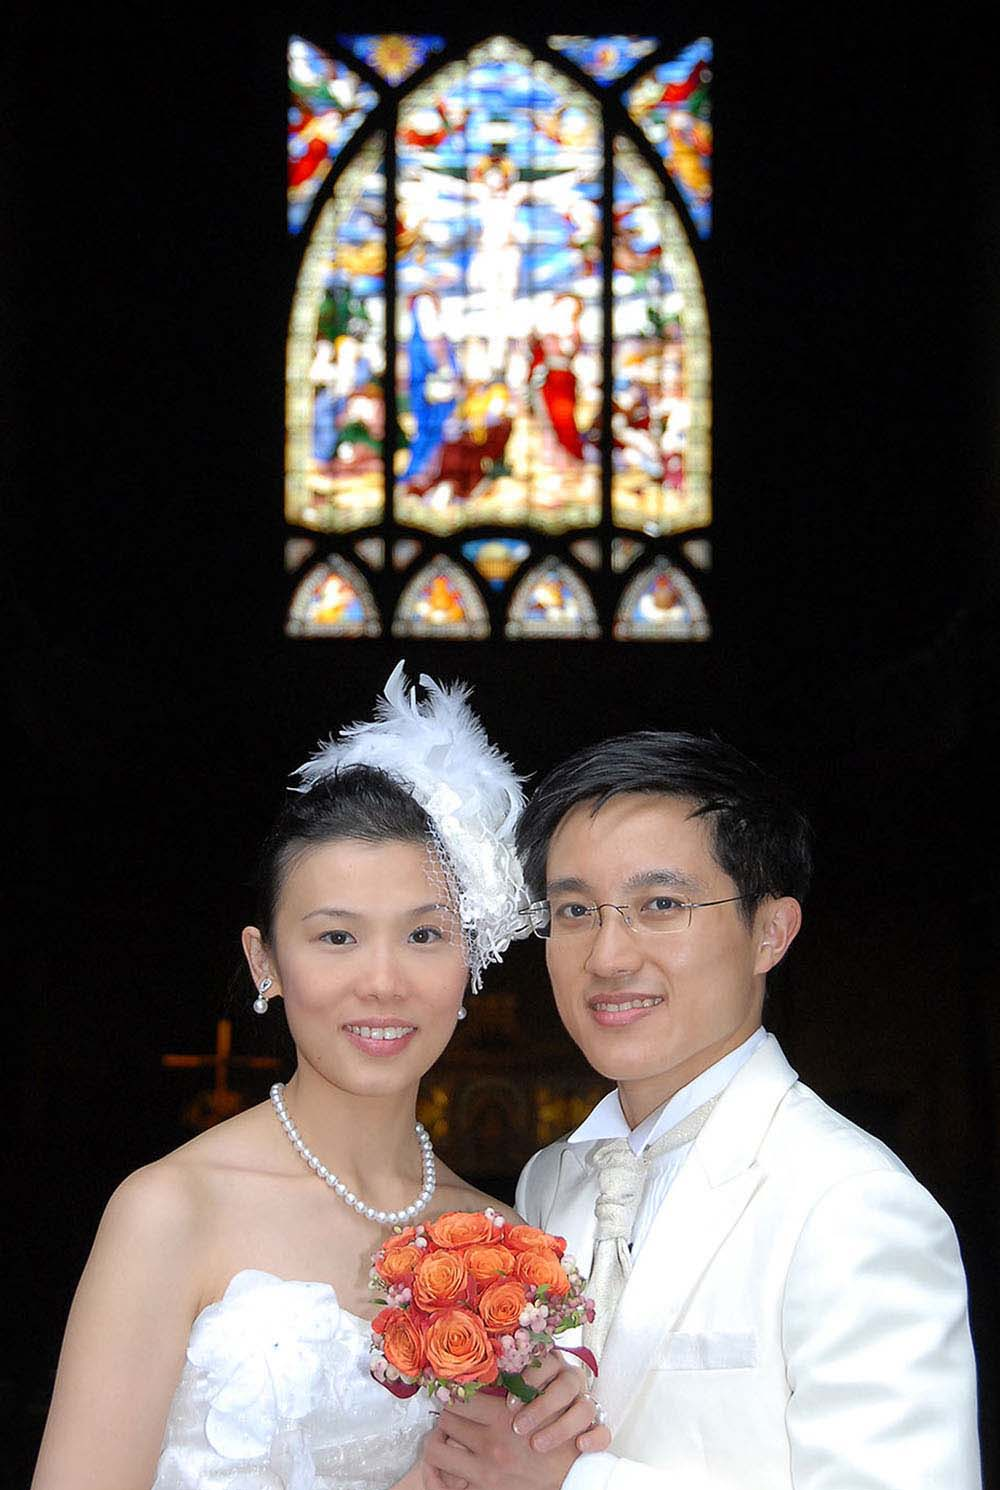 Married couple from Hong Kong at church, Paris, France